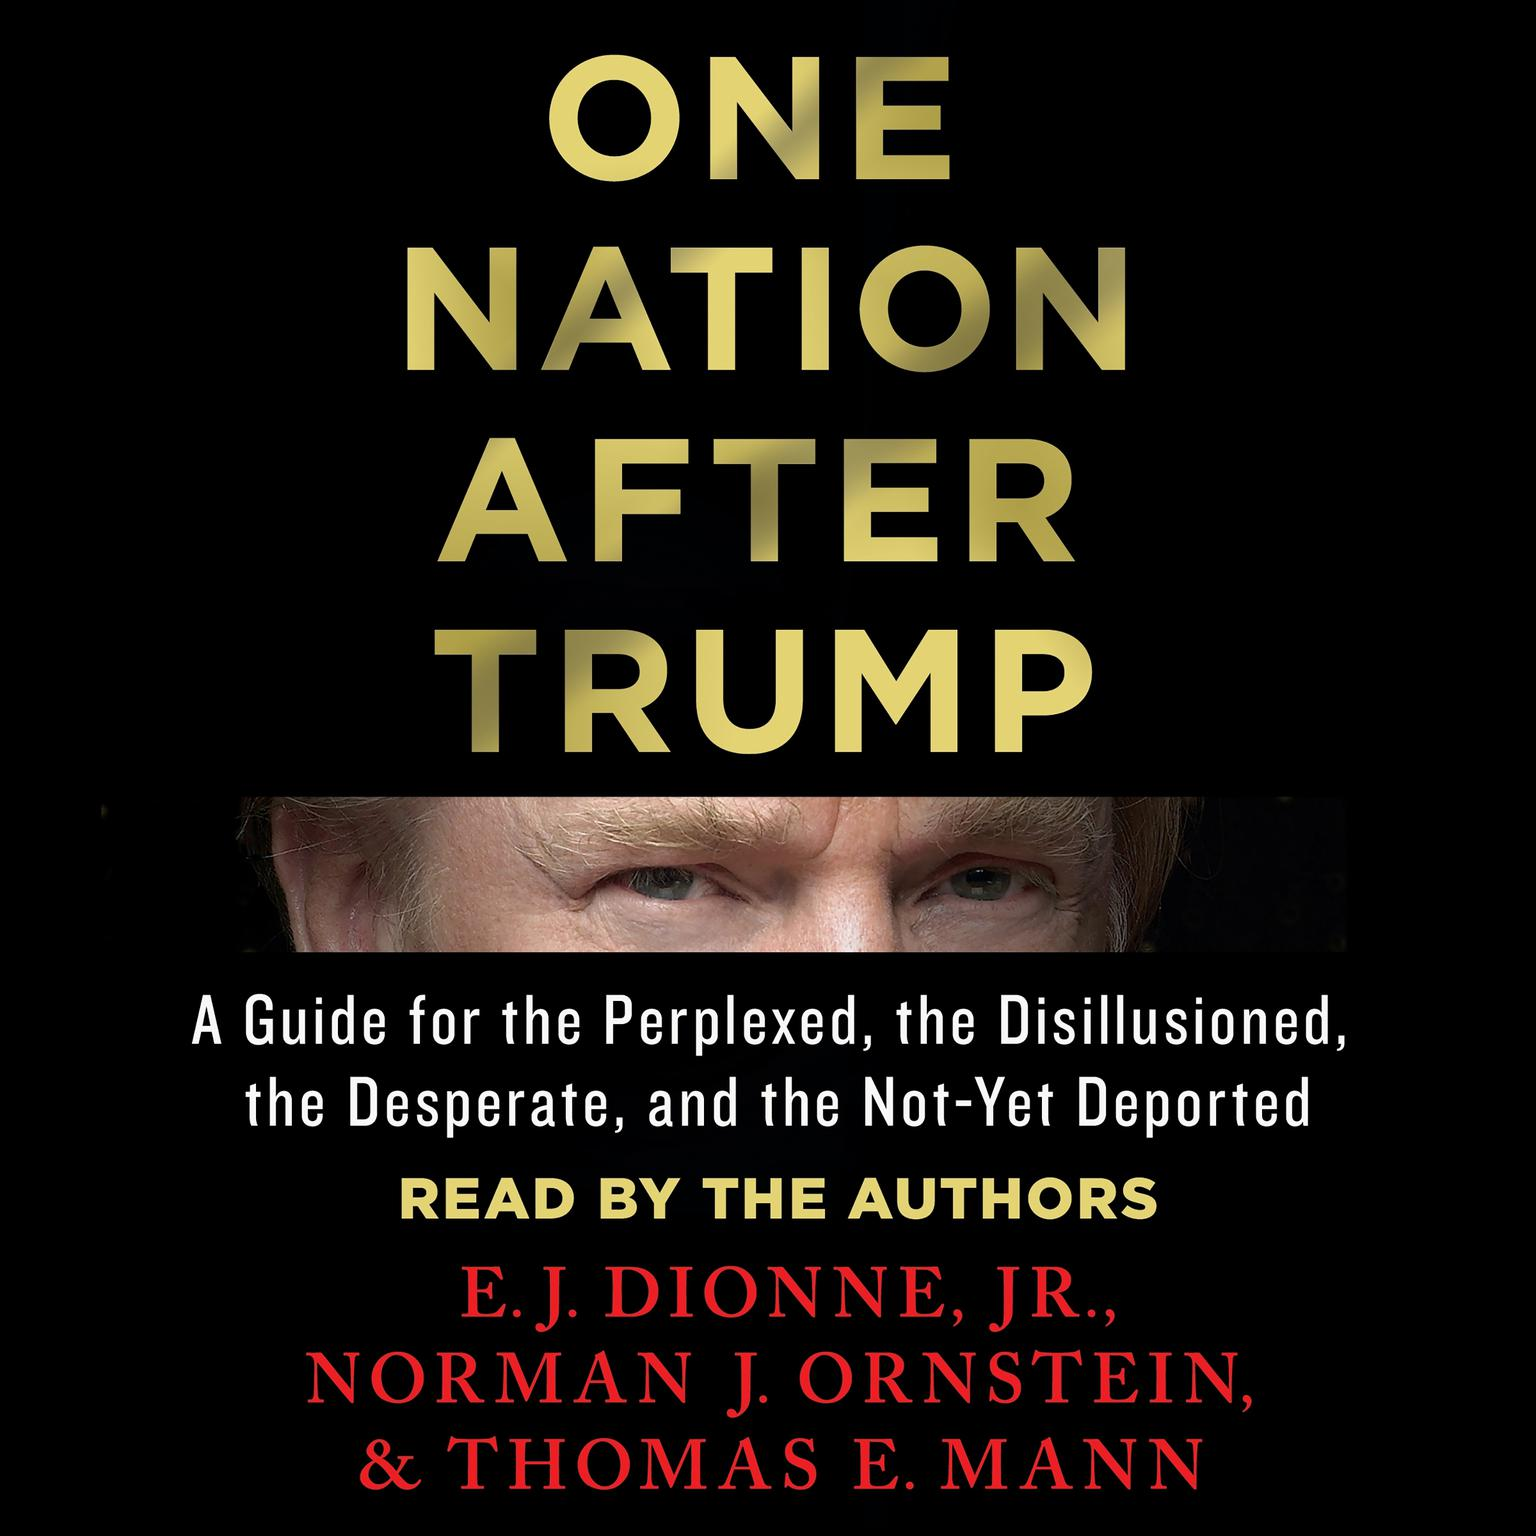 Printable One Nation After Trump: A Guide for the Perplexed, the Disillusioned, the Desperate, and the Not-Yet Deported Audiobook Cover Art